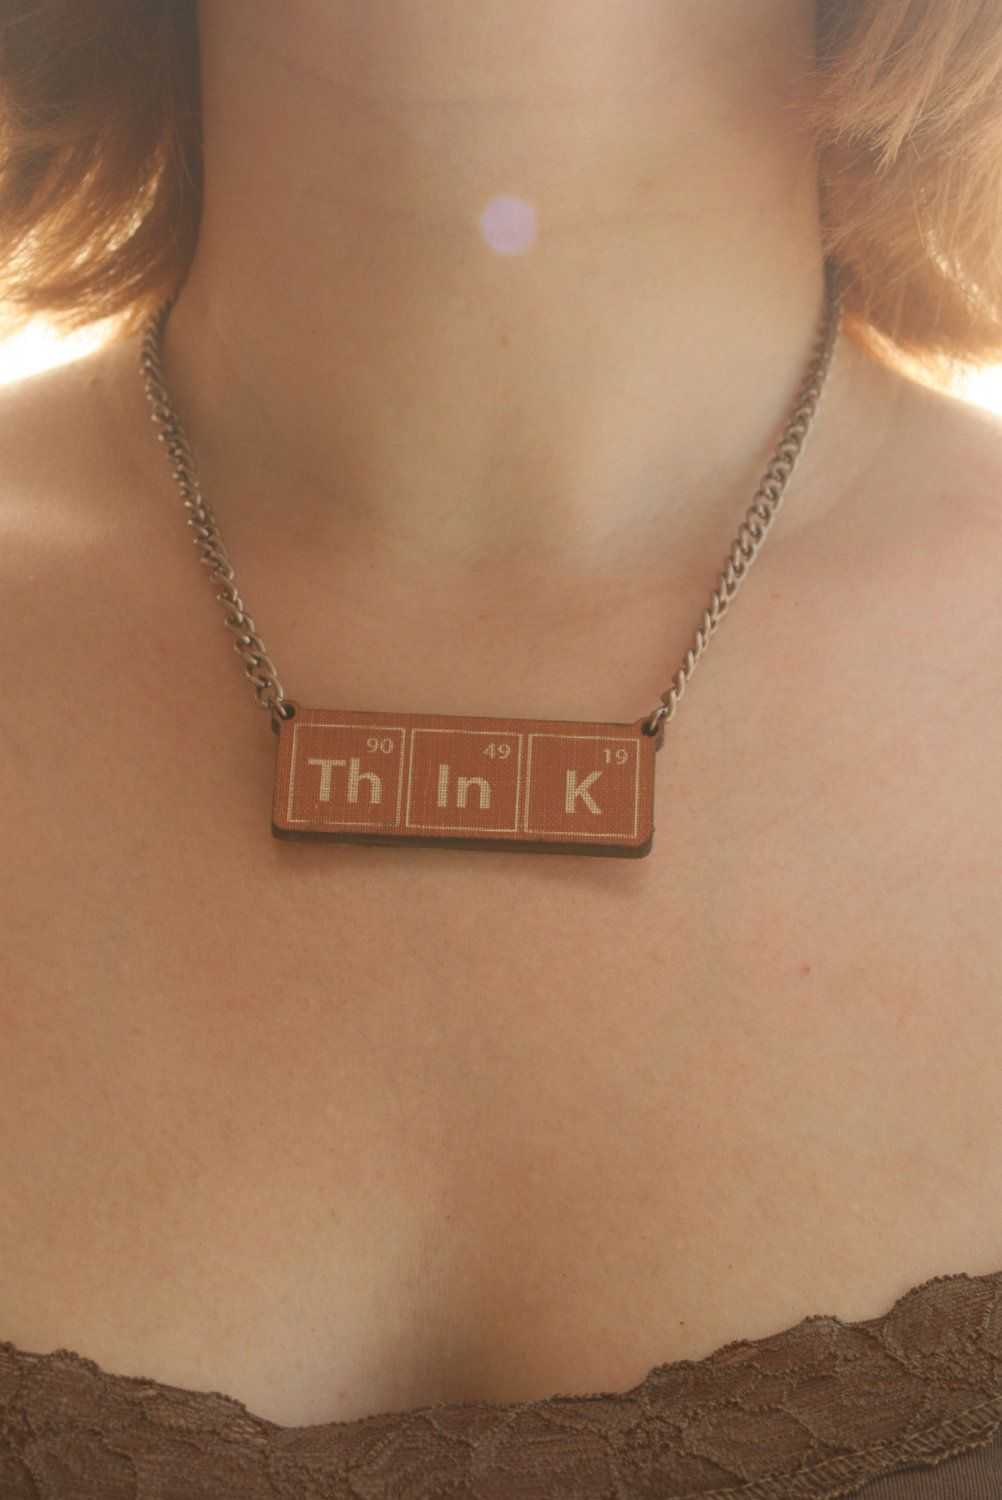 Periodic Table Necklace I Need Mine With Titanium And Sodium